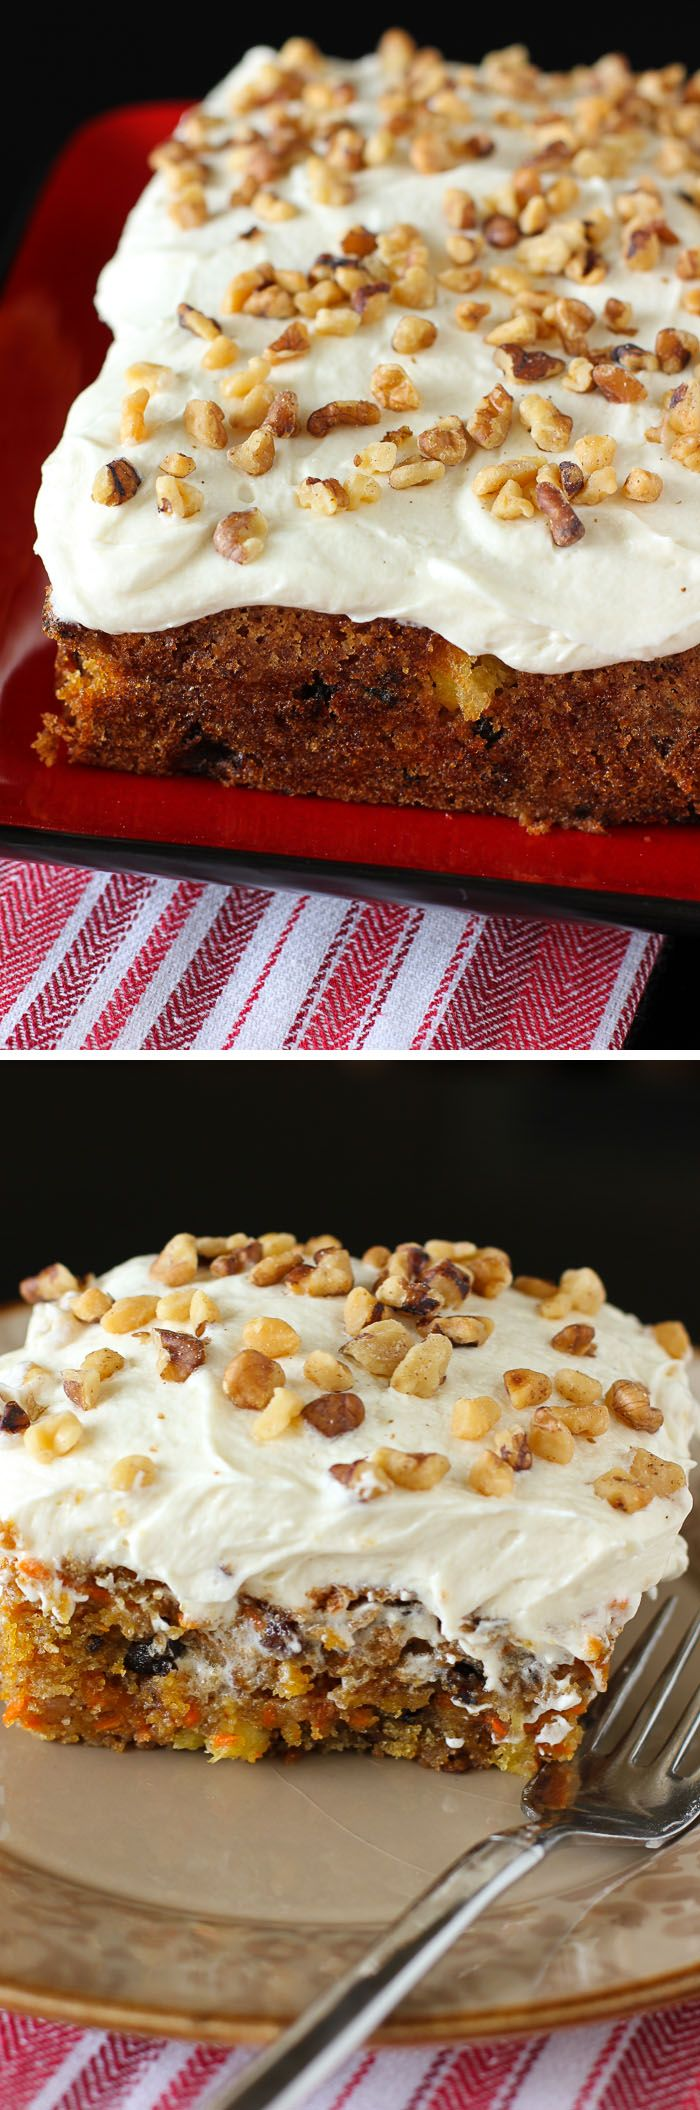 Easy Carrot Cake with Whipped Icing: the perfect sized little cake, and so easy to make -- no layer cake fuss! This is the best icing everrr.